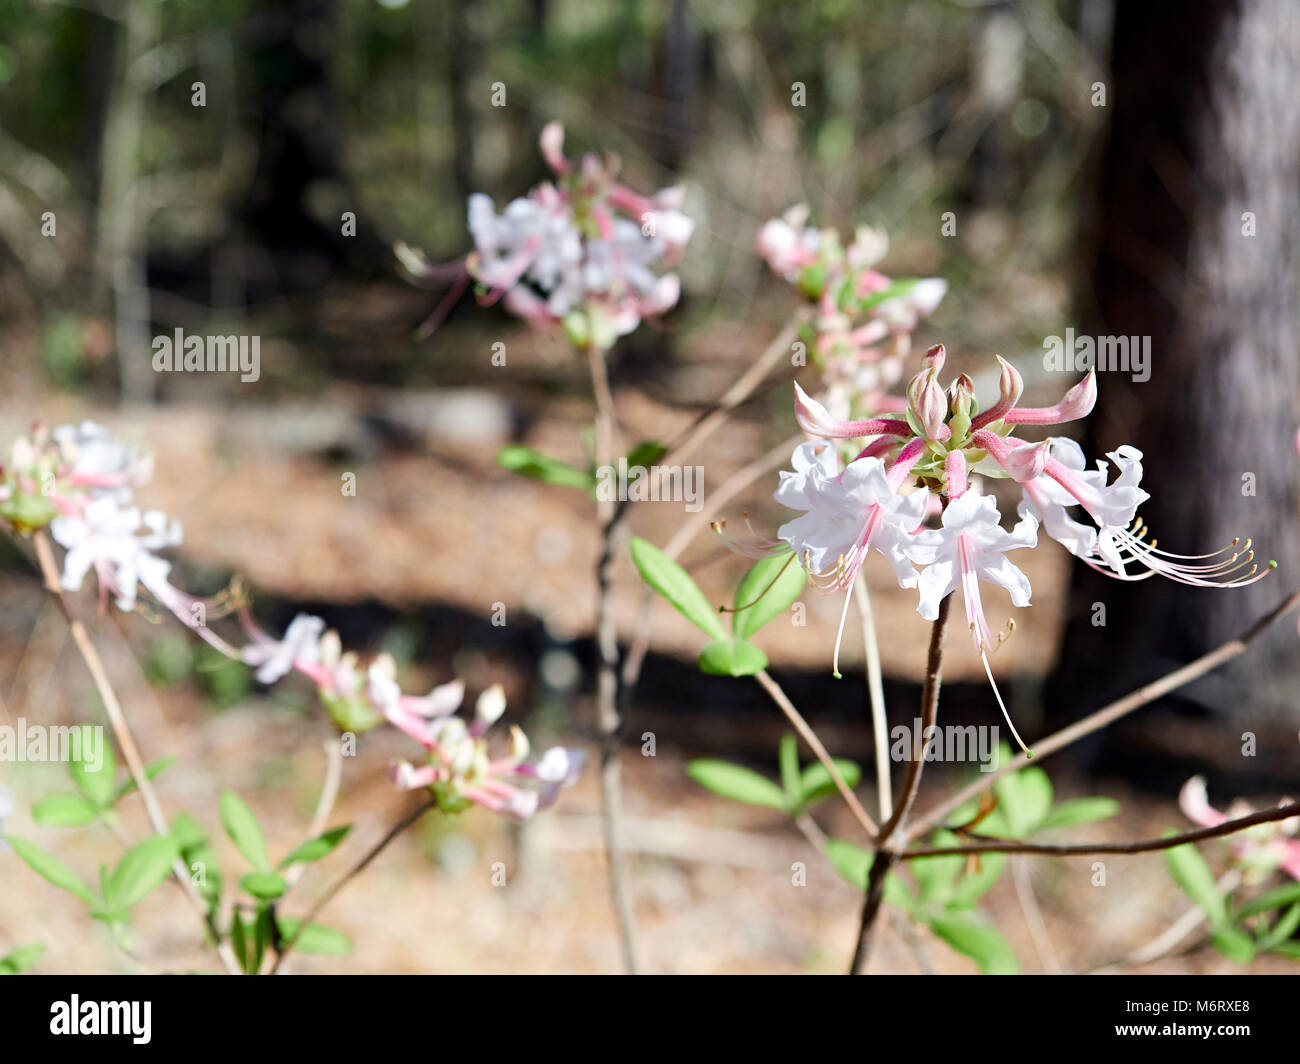 Piedmont Azalea or rhododendron canescens growing in the wild in the forest in Alabama, USA. - Stock Image